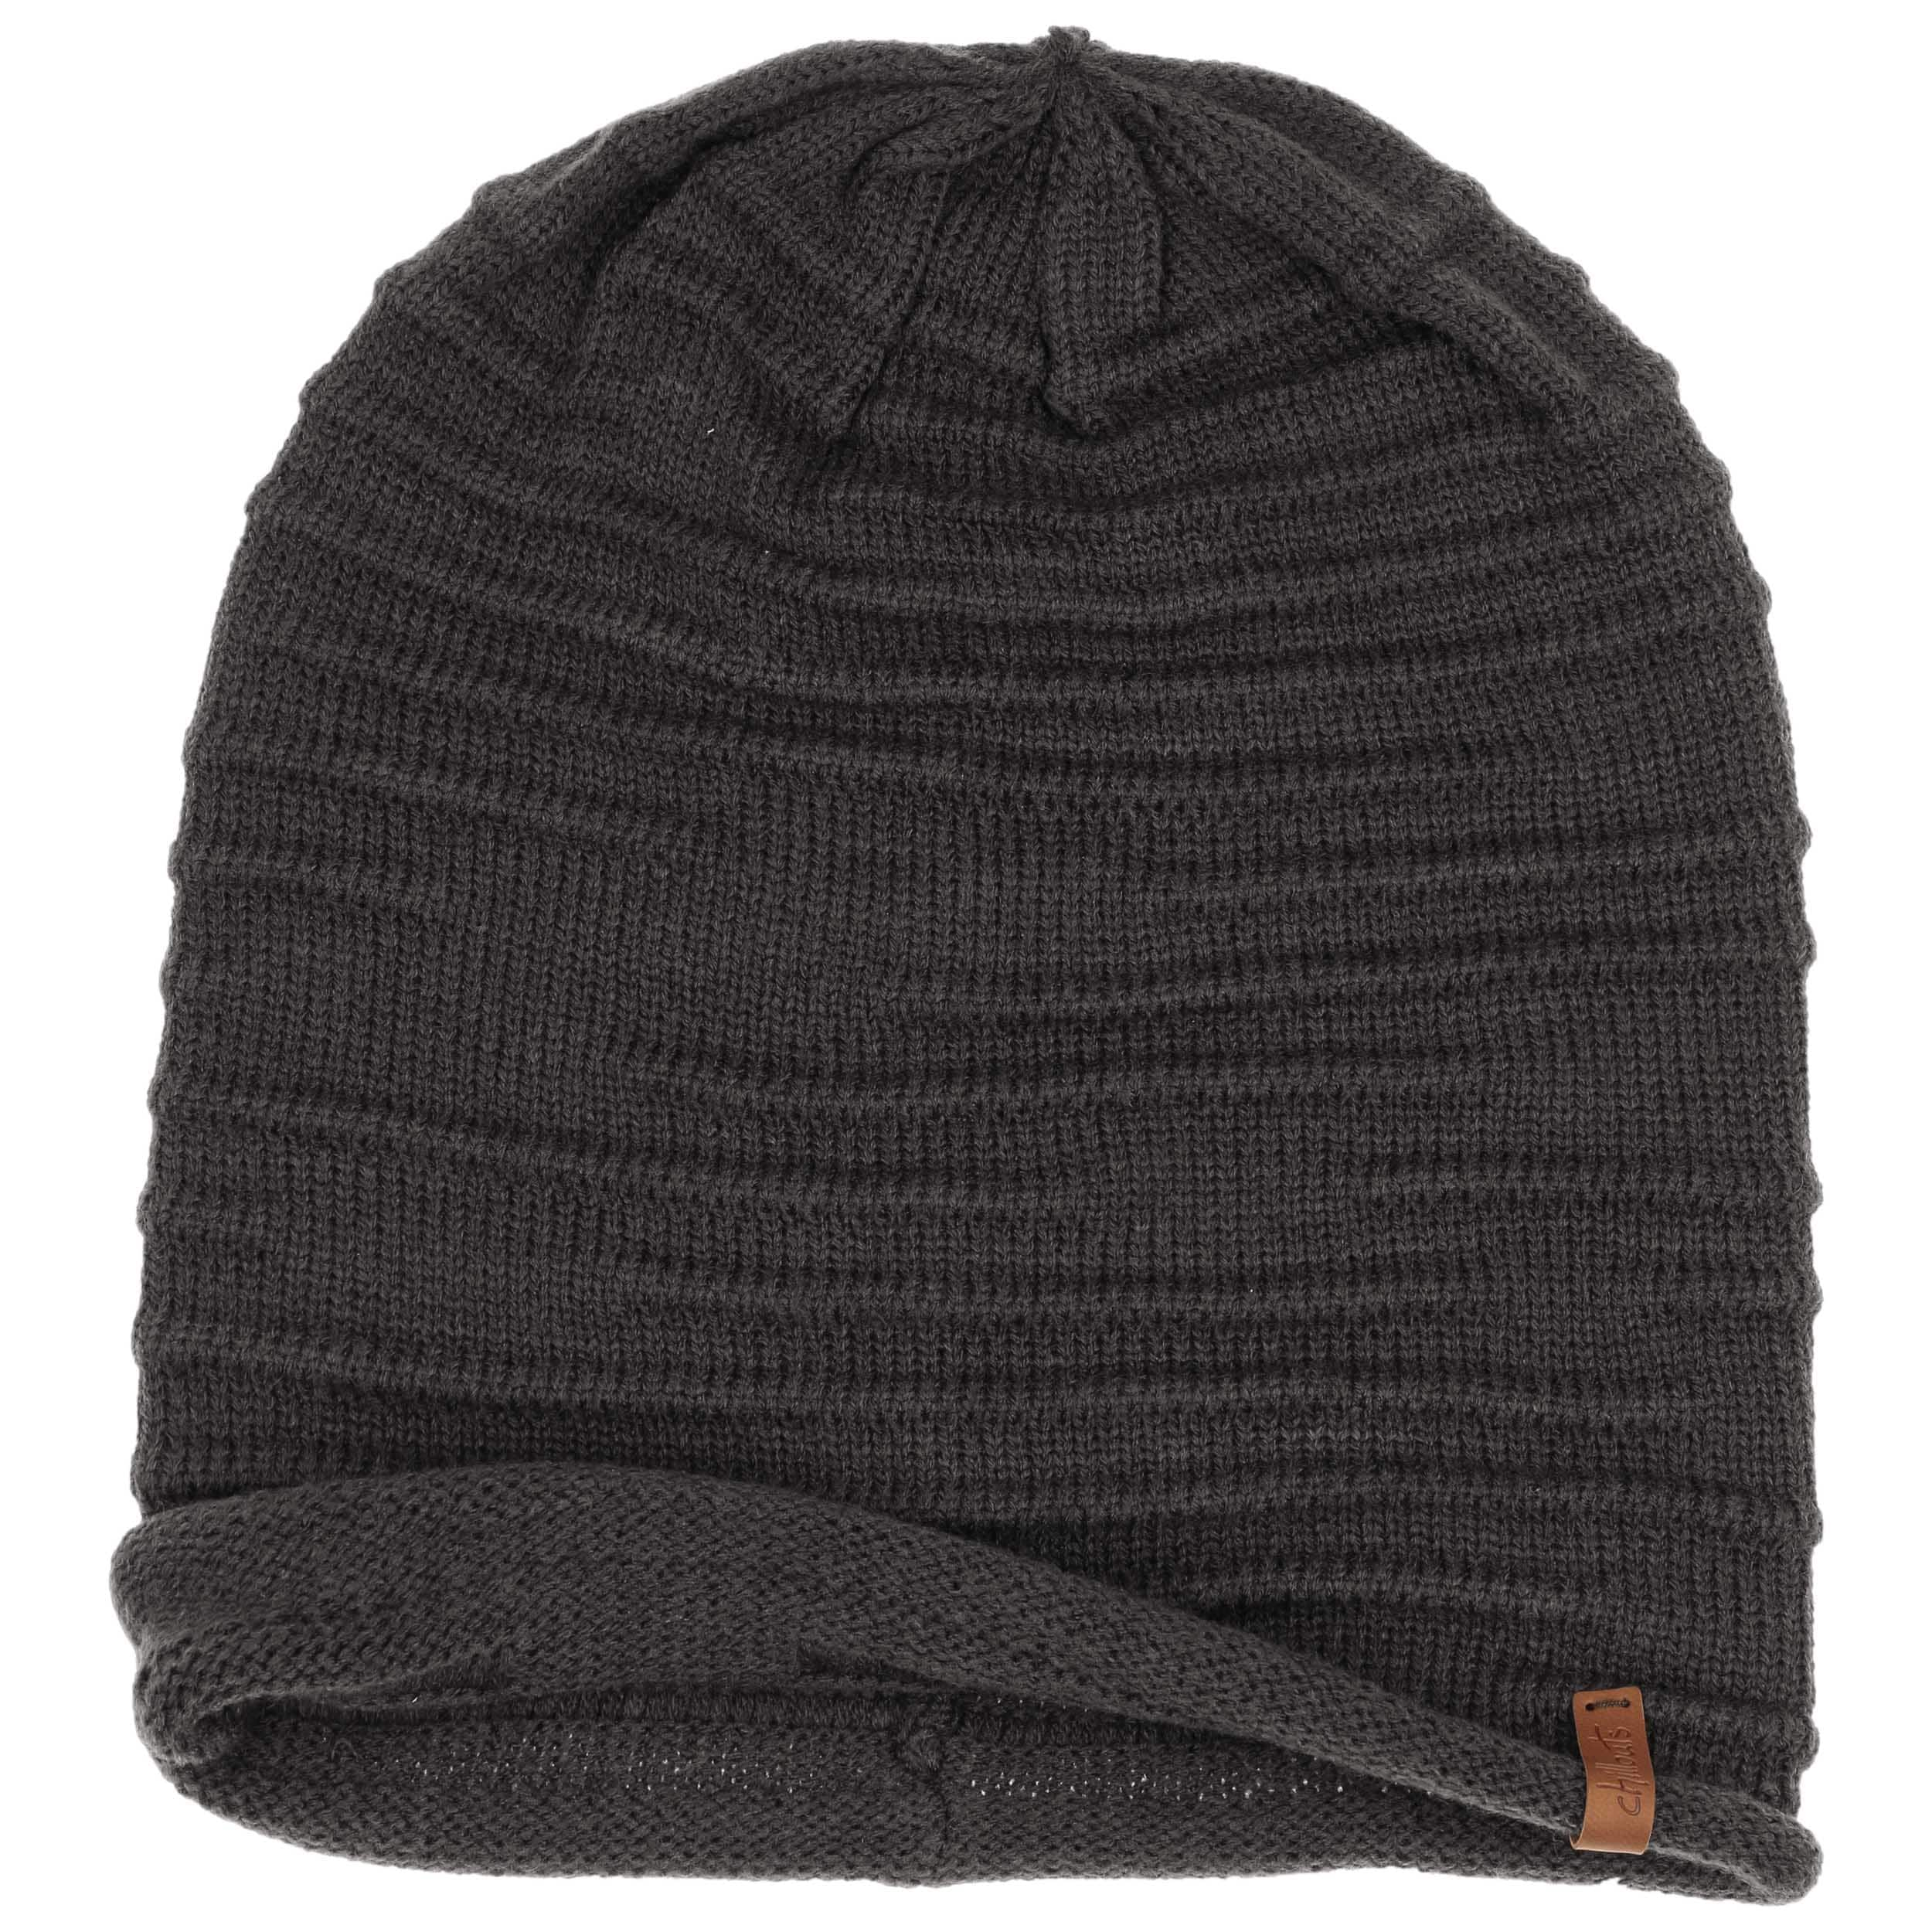 ... marrone 1 · Berretto Aarony Long Beanie by Chillouts - antracite 1 ... a879d56b88ee